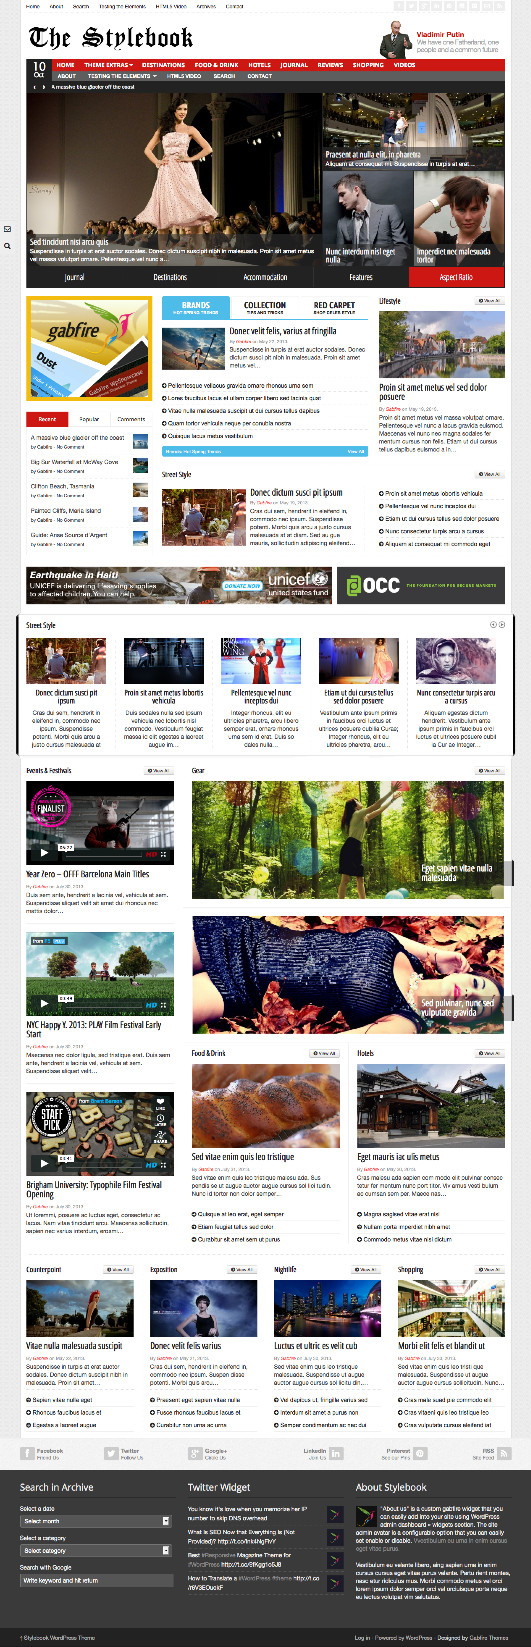 Stylebook WordPress Magazine Theme